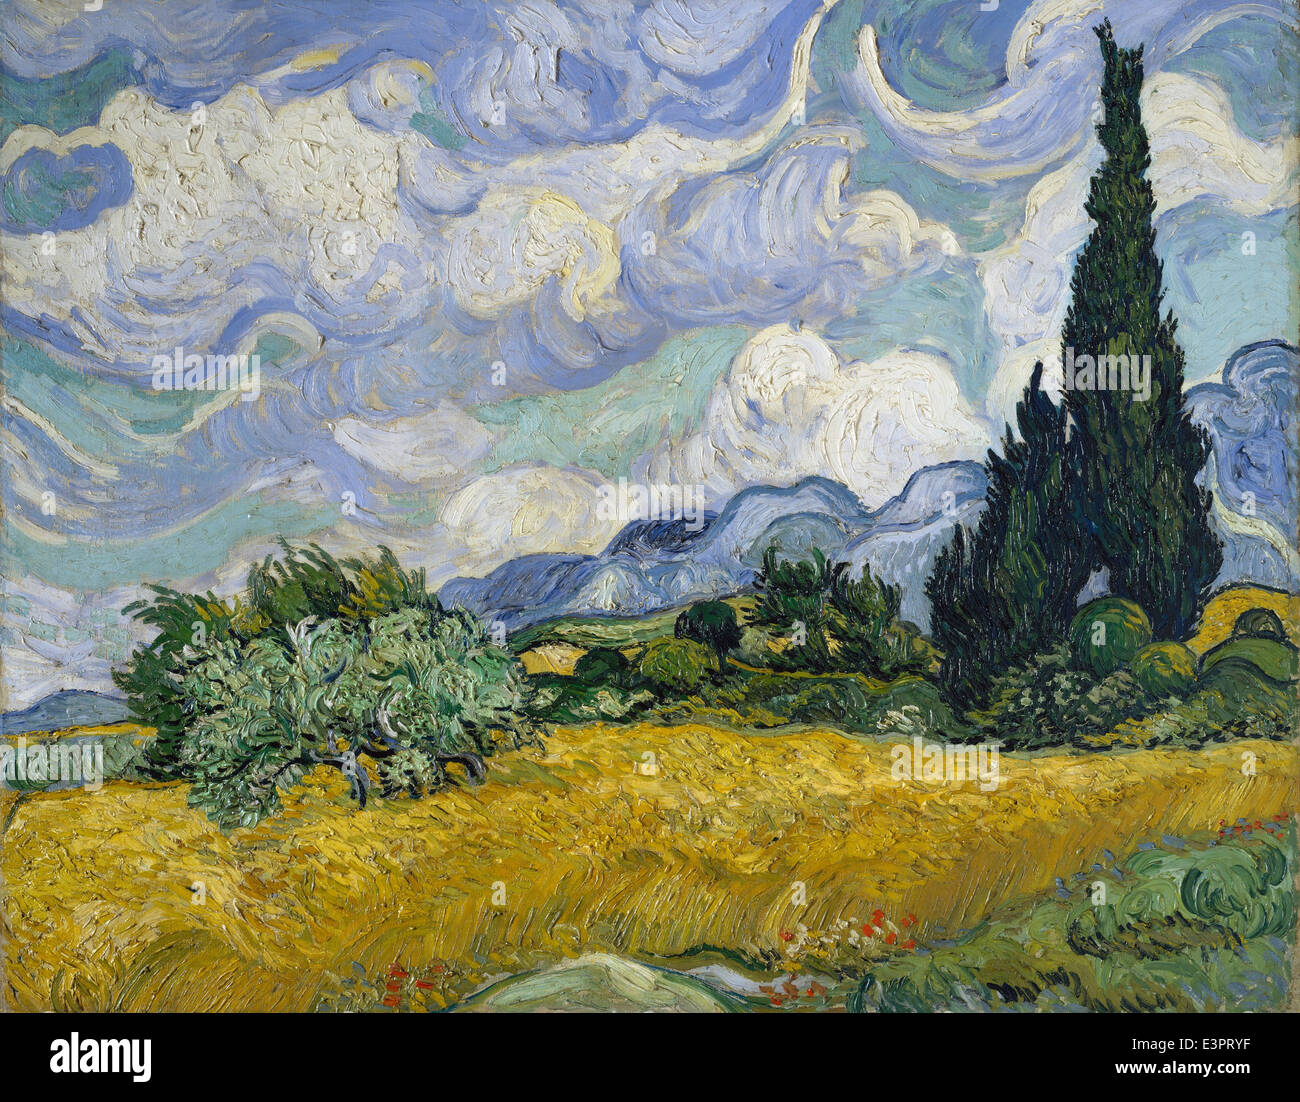 Vincent van Gogh - Wheat Field with Cypresses - 1889 - MET Museum - New-York - Stock Image